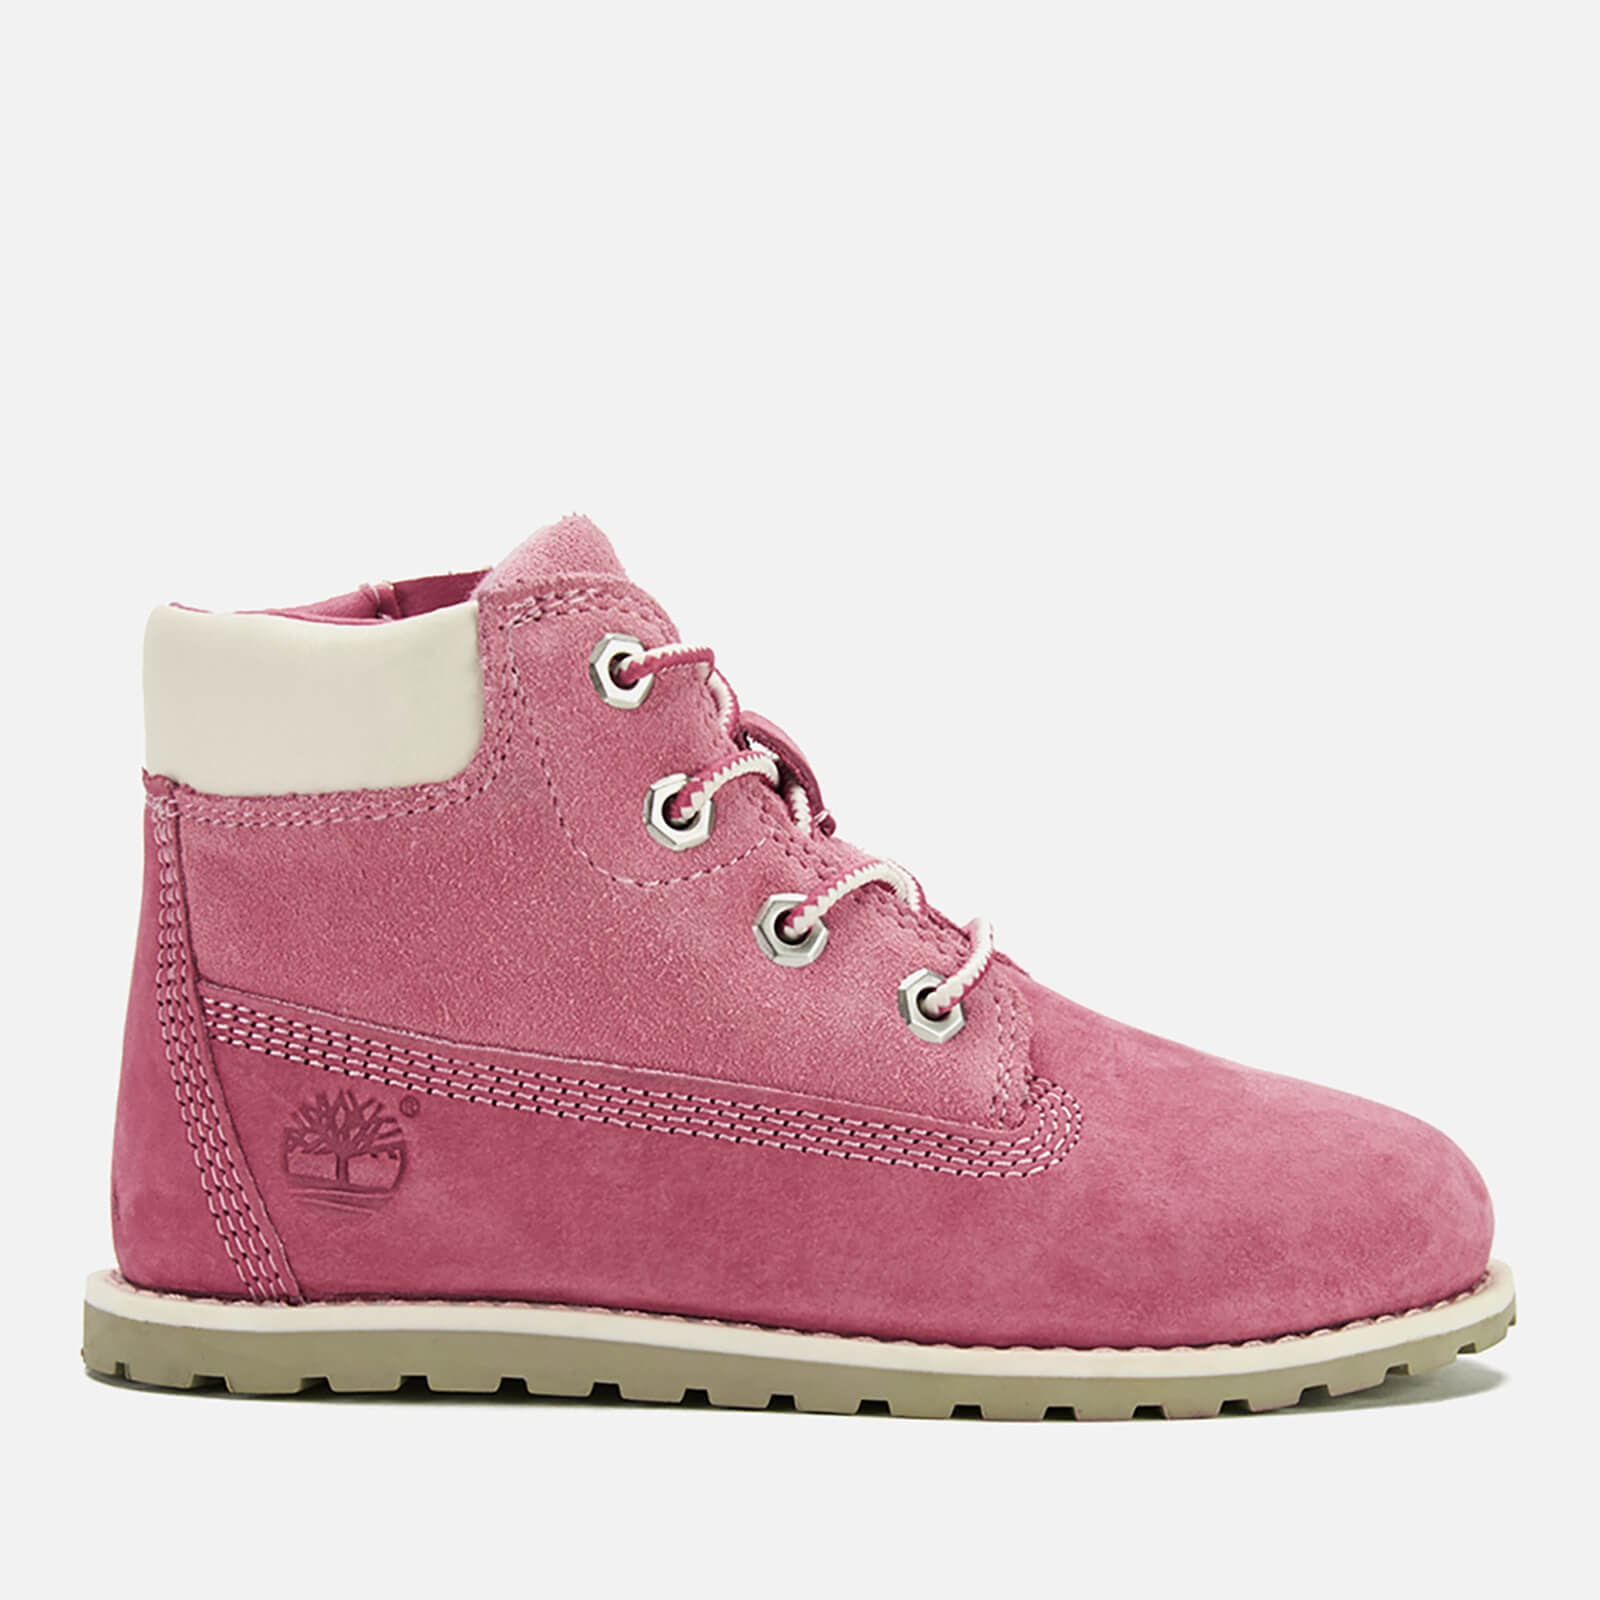 65c53e387ea49 Timberland Toddlers' Pokey Pine Leather 6 Inch Zip Boots - Pink Junior  Clothing   TheHut.com